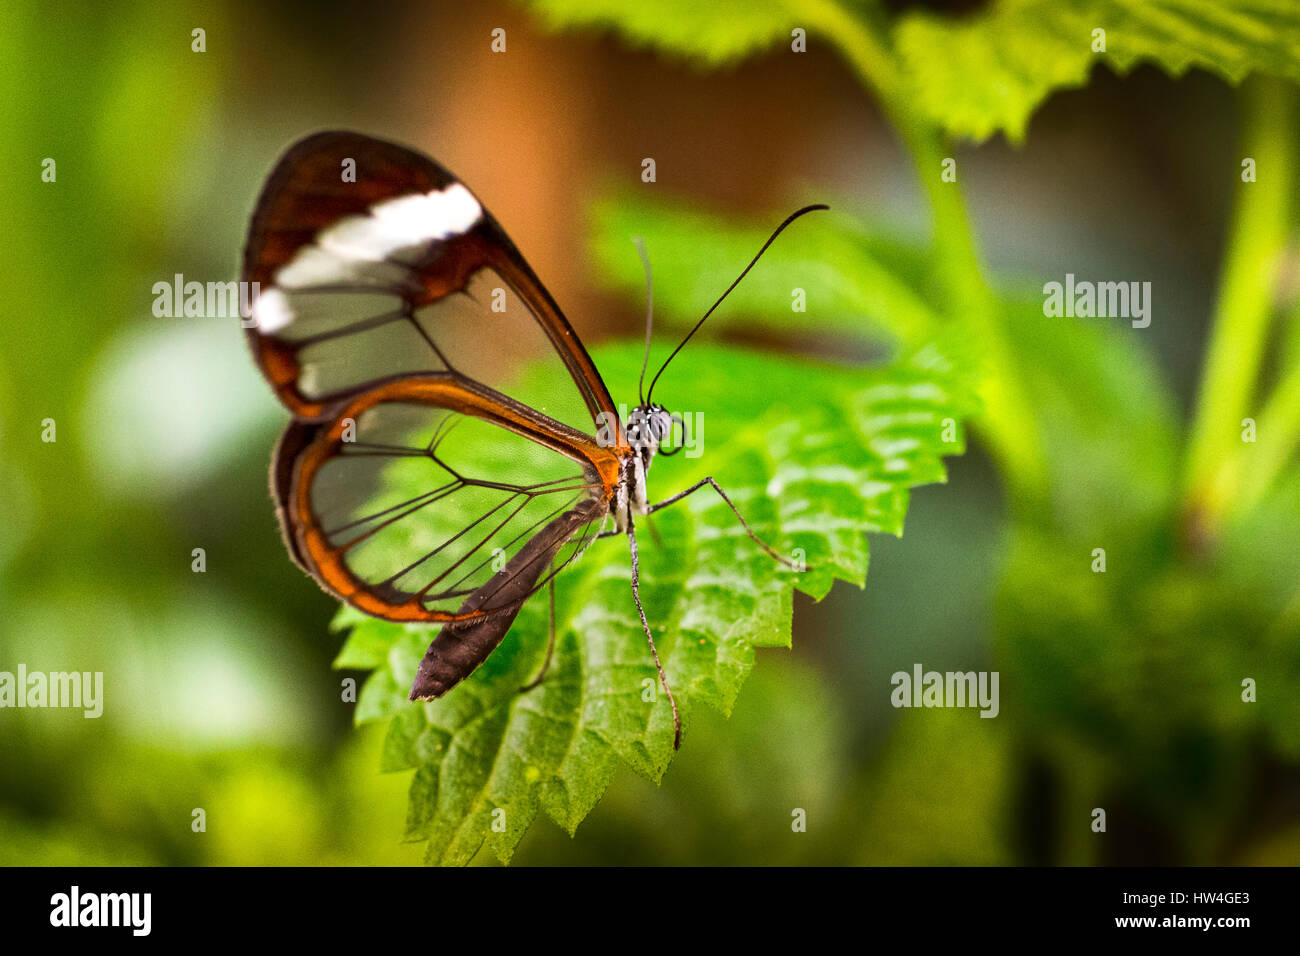 Greta oto butterfly. Glass butterfly or mirrors butterfly, transparent wings. Benalmadena Butterfly Park, Costa - Stock Image